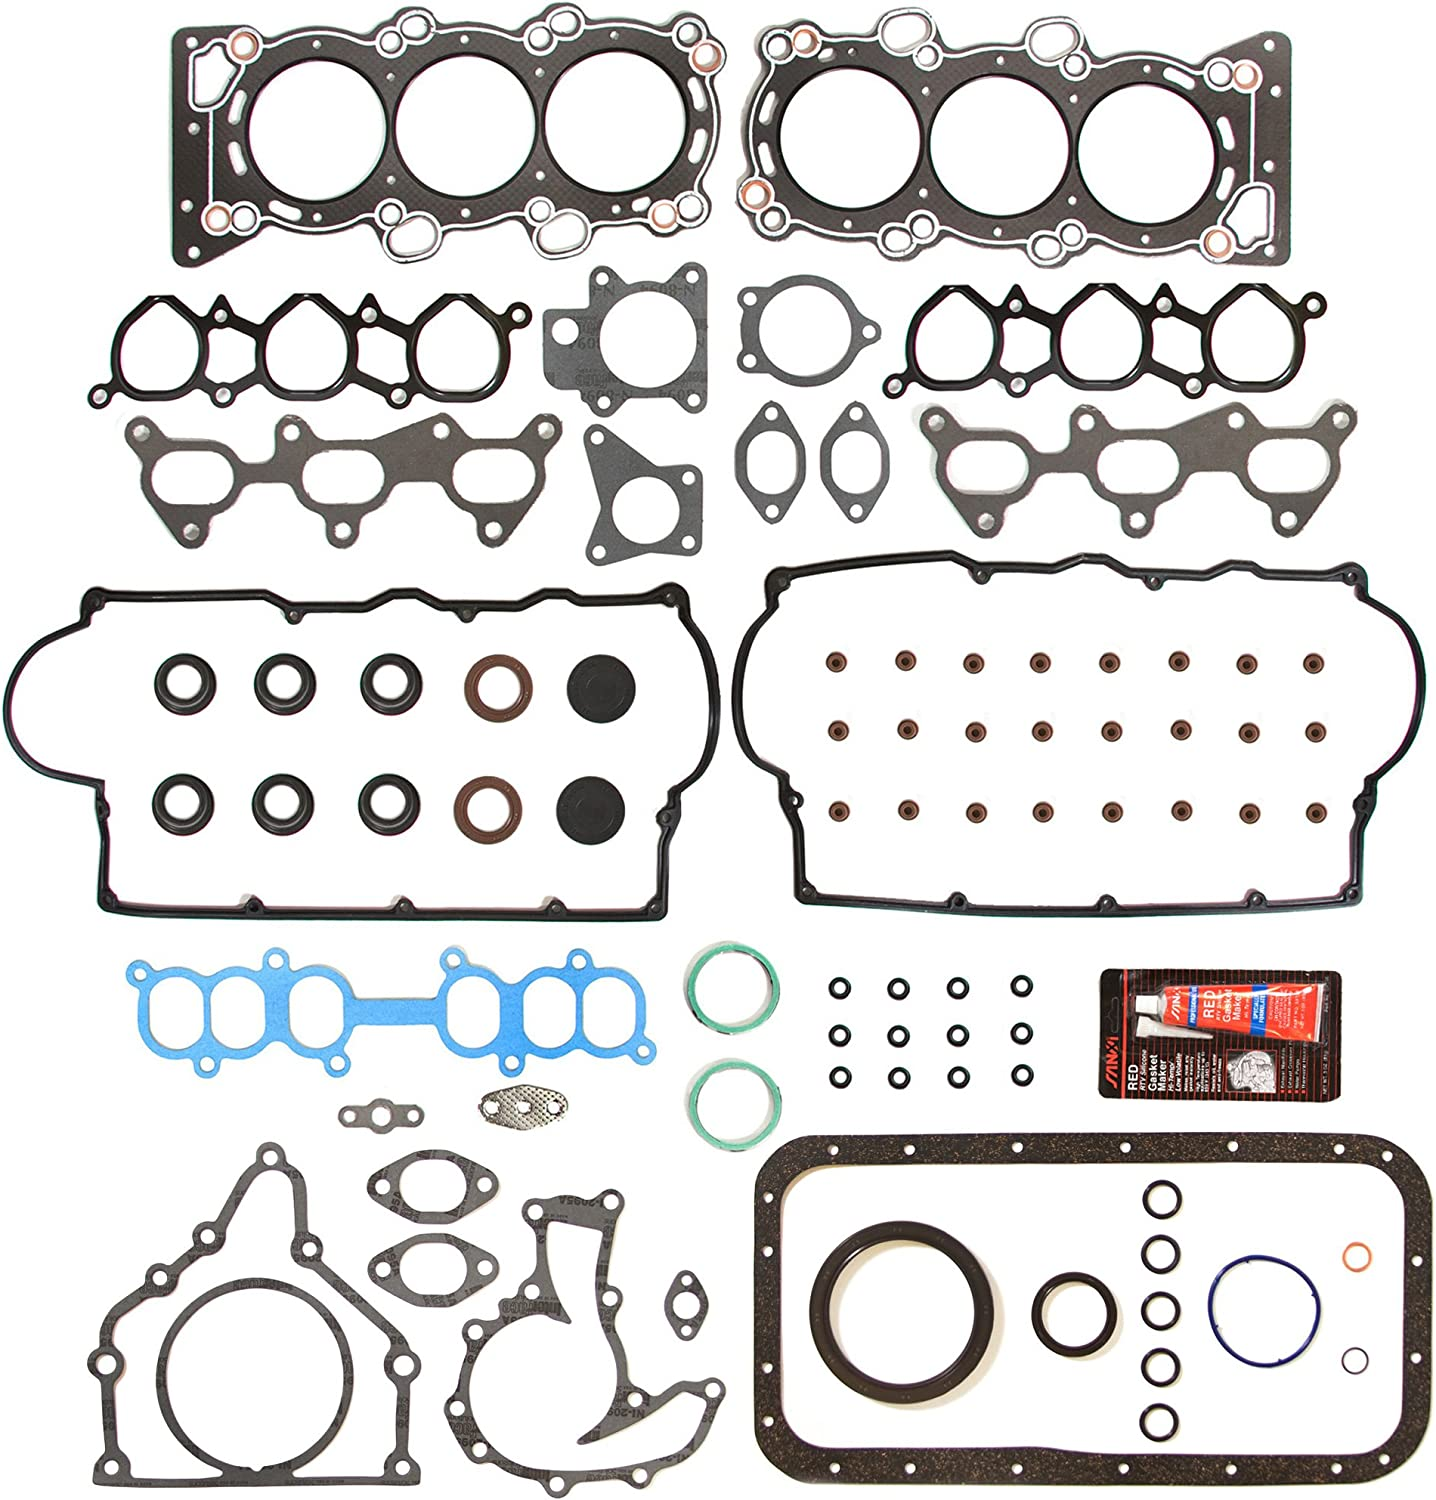 0.010 Oversize Main Rod Bearings Evergreen Engine Rering Kit FSBRR4028-2EVE\2\1\1 Fits 92-95 Honda Civic 1.5 SOHC D15Z1 Full Gasket Set 0.25mm 0.020 Oversize Piston Rings 0.50mm